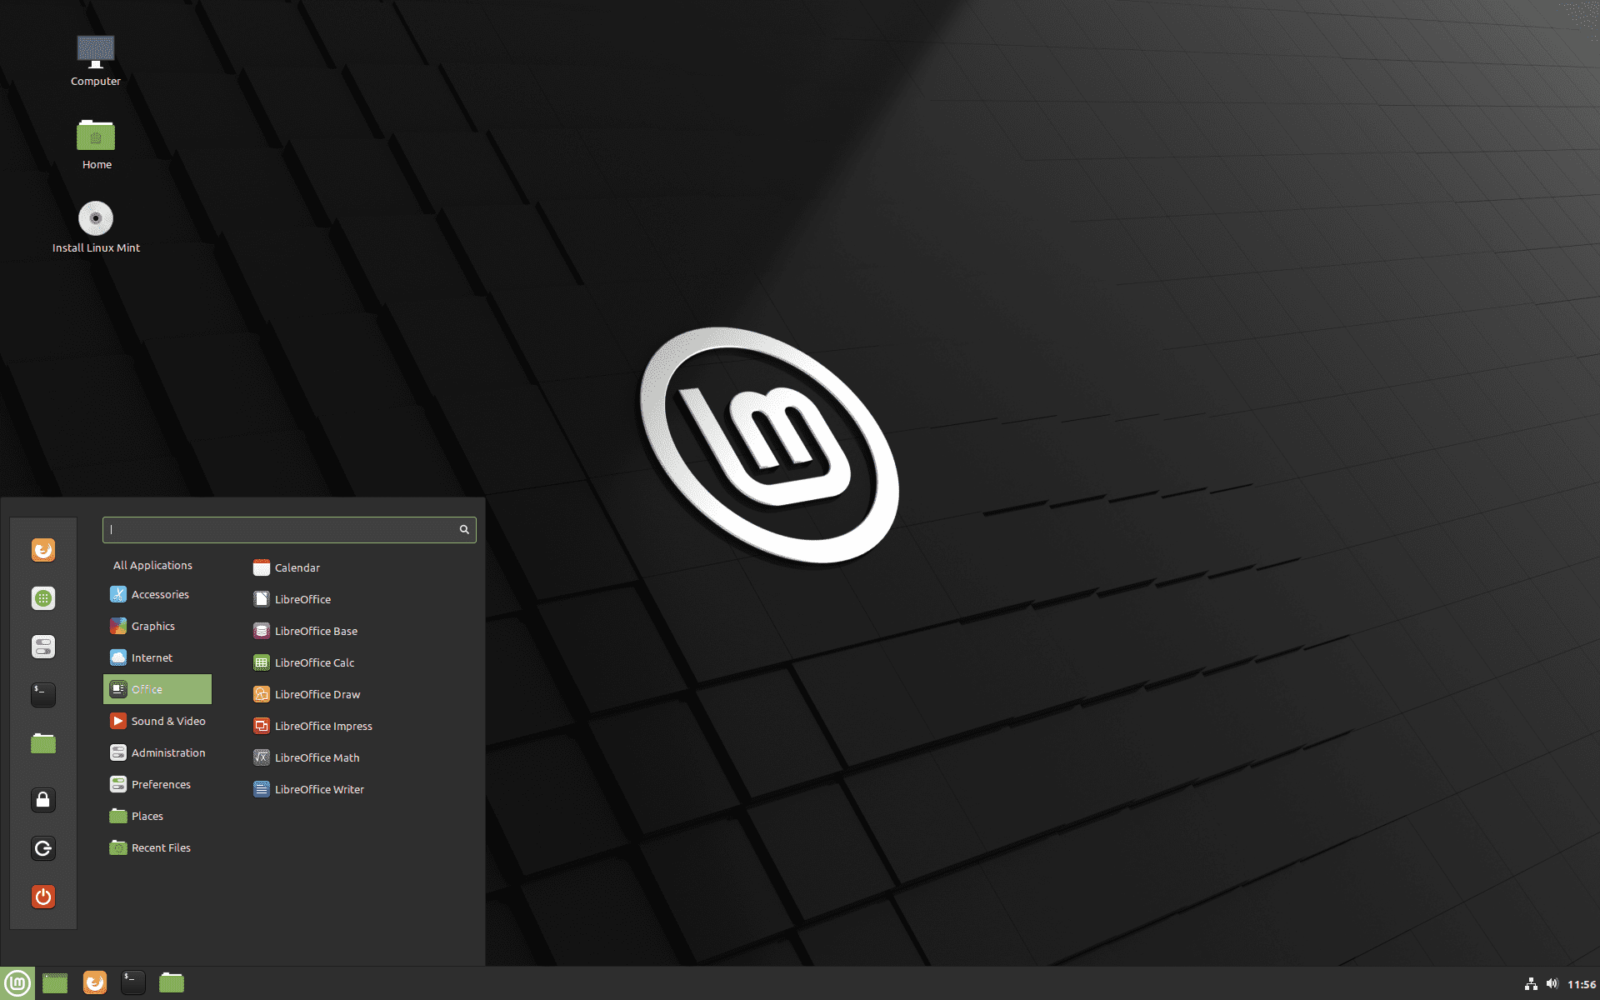 Linux Mint 20 Final has been released